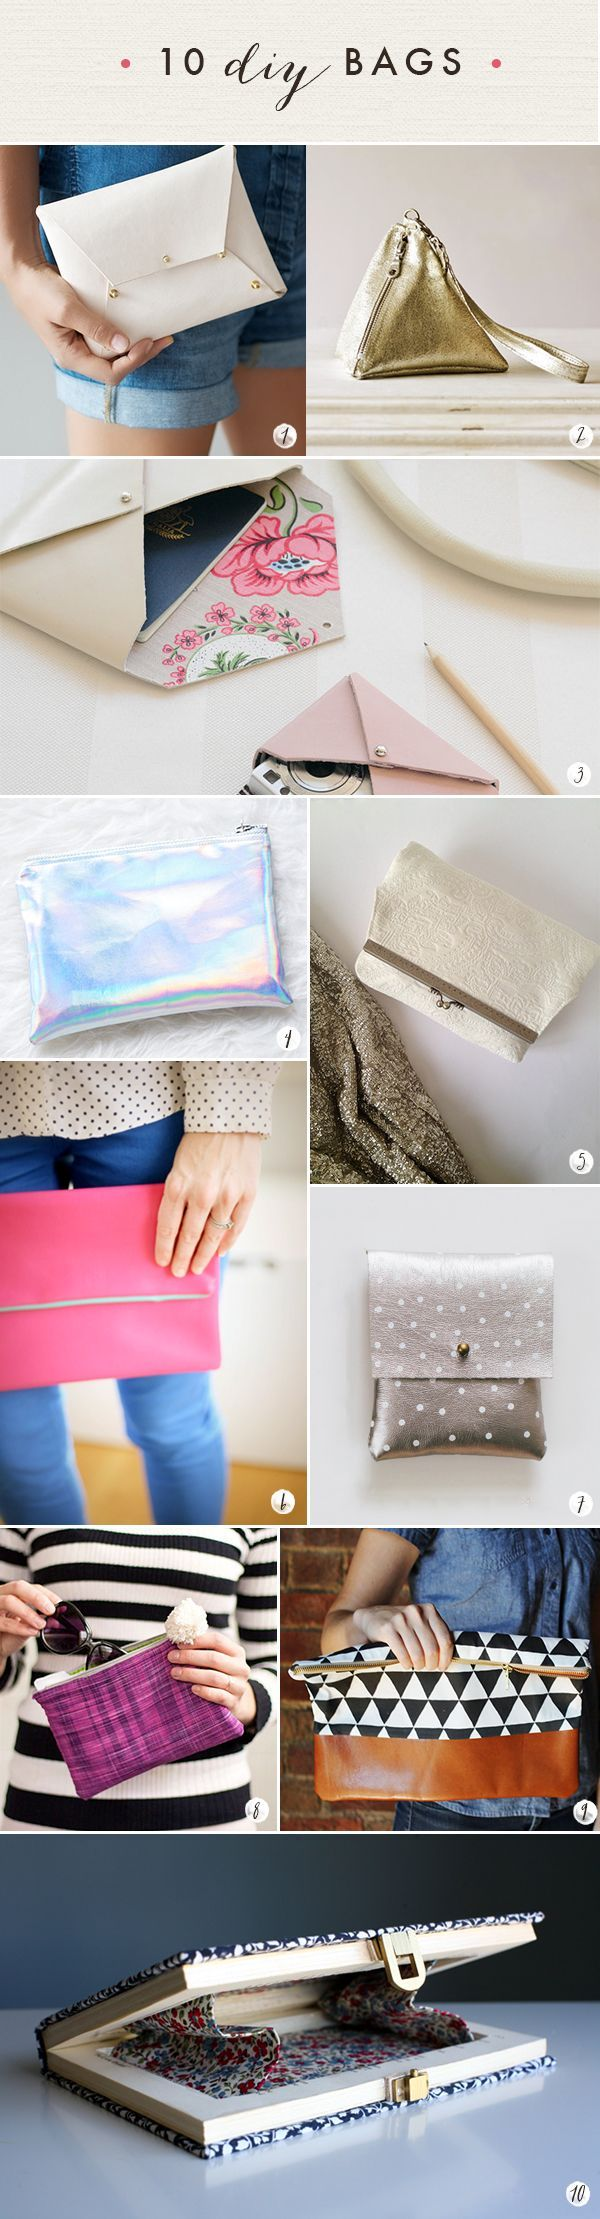 DIY your photo charms, 100% compatible with Pandora bracelets. Make your gifts special. 10 DIY bags!  Oh the lovely things: 60 DIY Accessories - Last Minute Gifts For Fashionistas